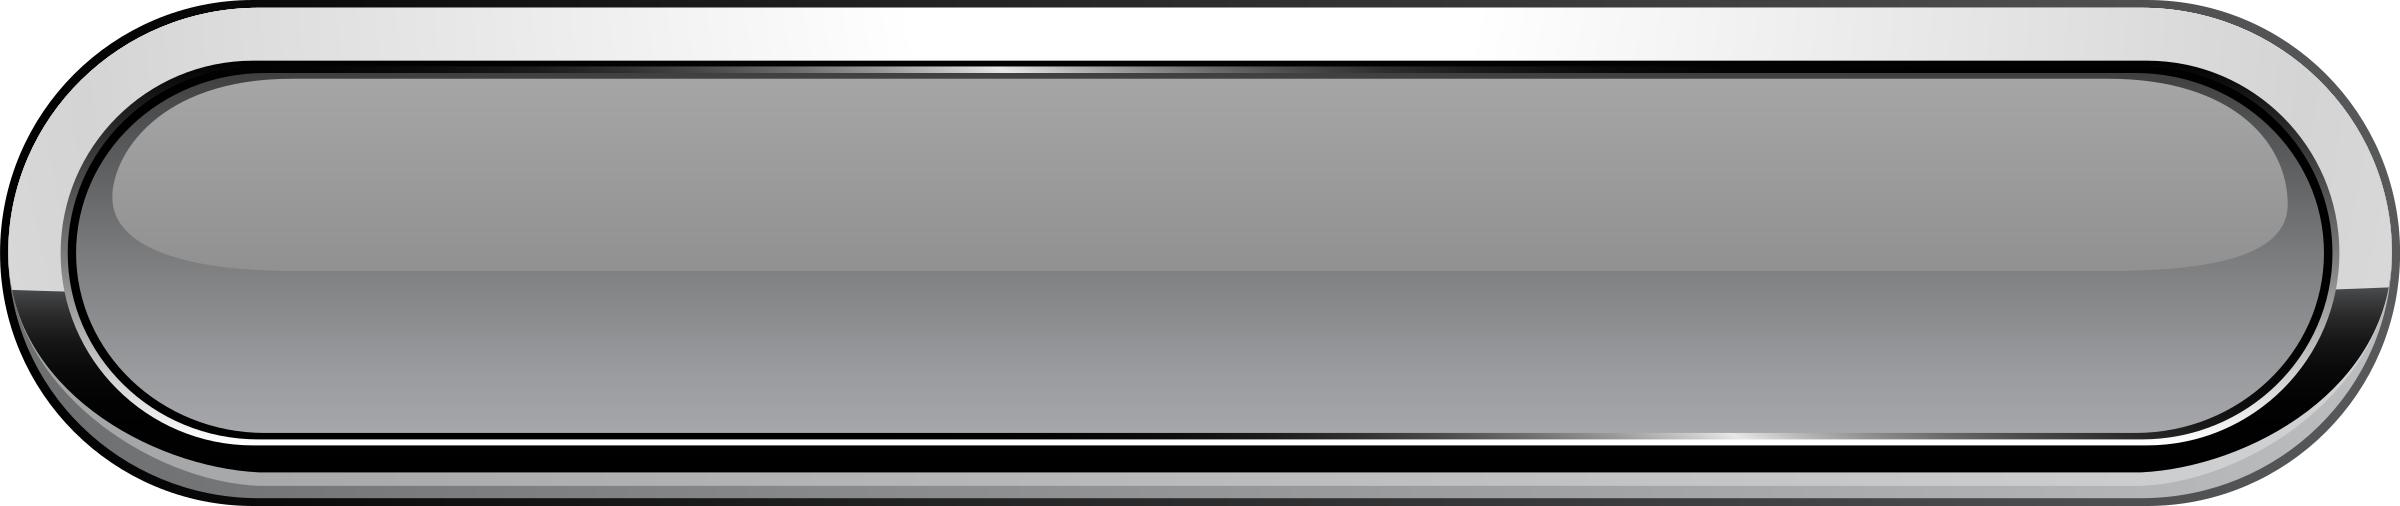 White Rectangle Button Png (+).